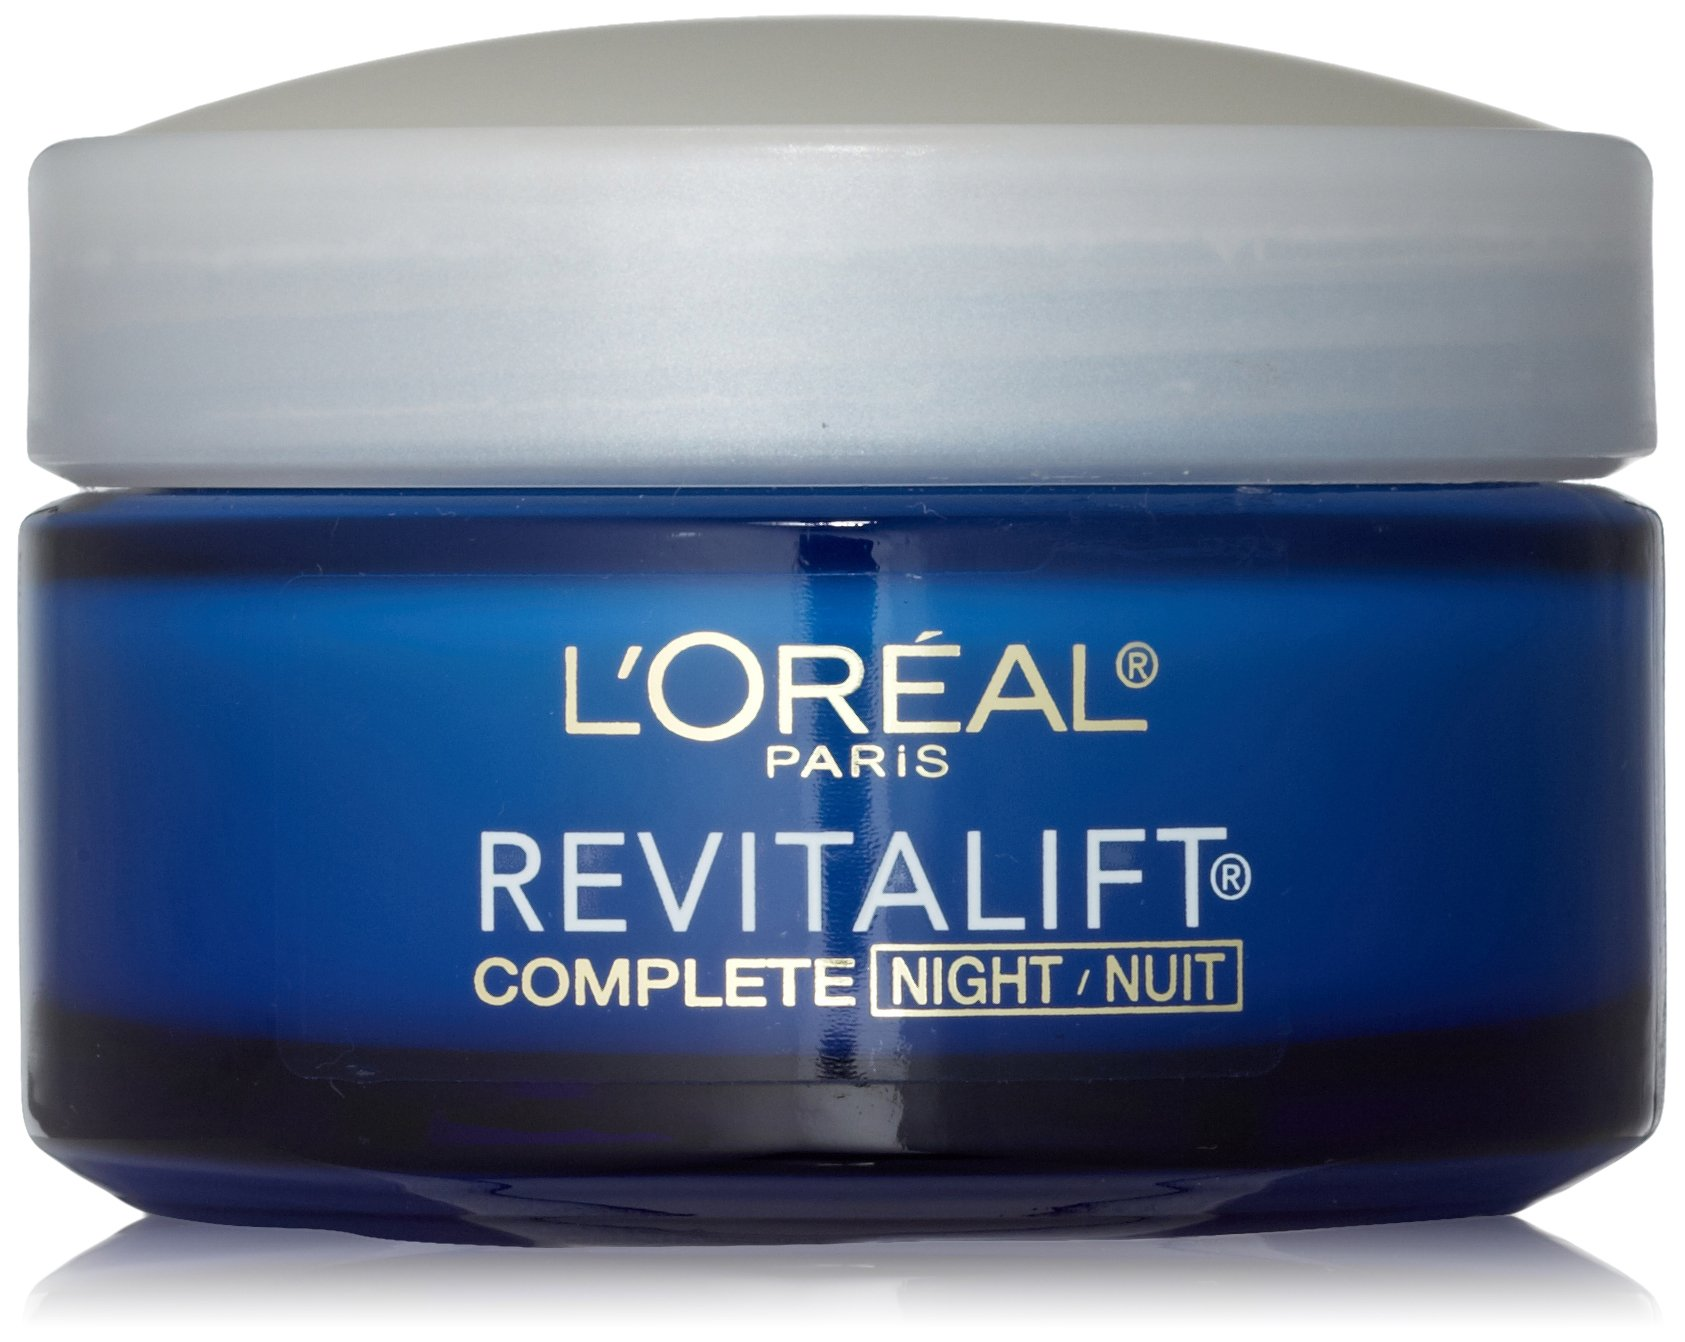 LOreal Paris, RevitaLift Anti-Wrinkle + Firming Night Cream Moisturizer 1.7 oz